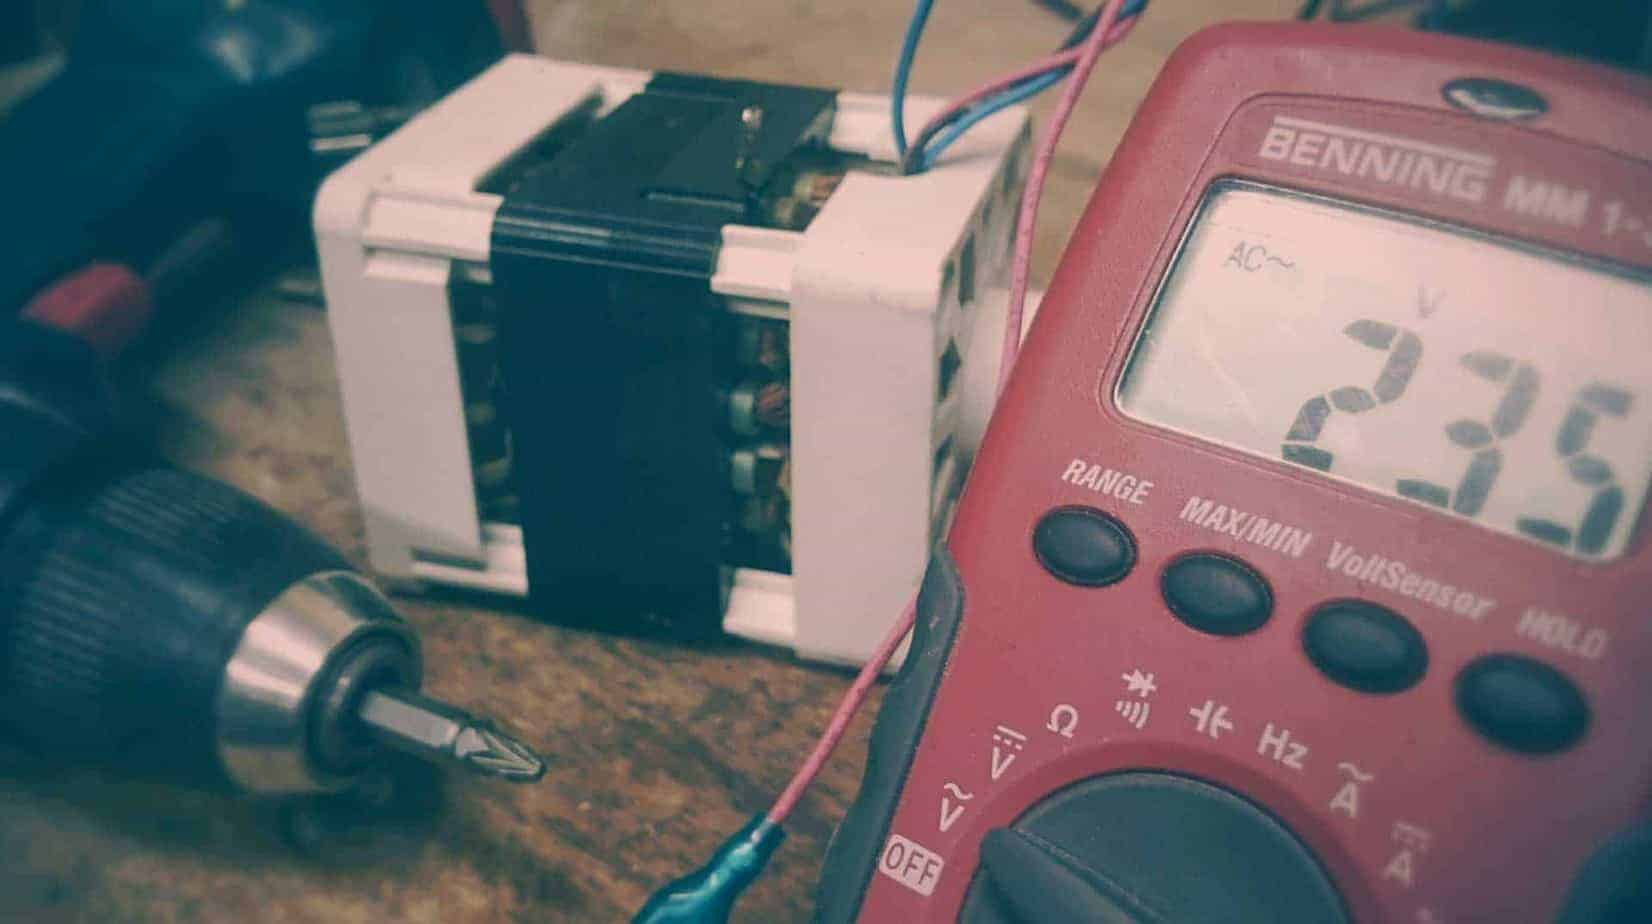 Multimeter and test leads